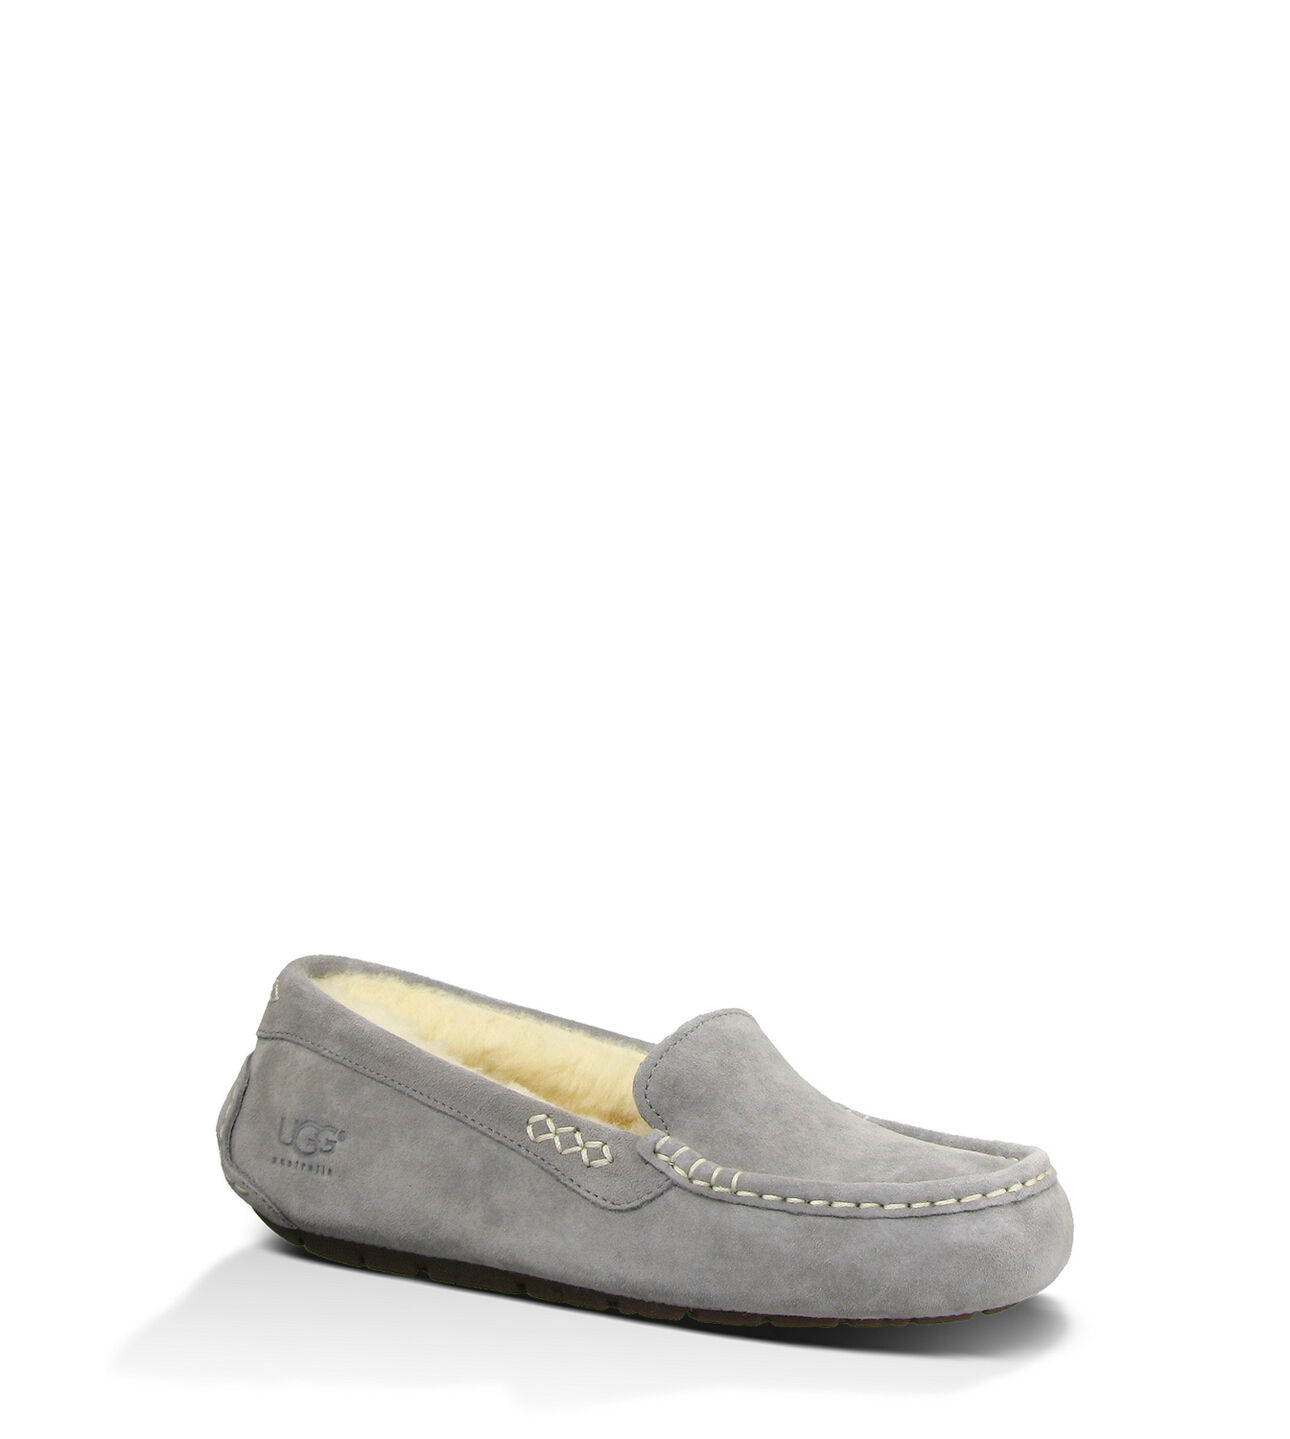 955886854fa Ugg Ansley Light Grey Size 7 - cheap watches mgc-gas.com